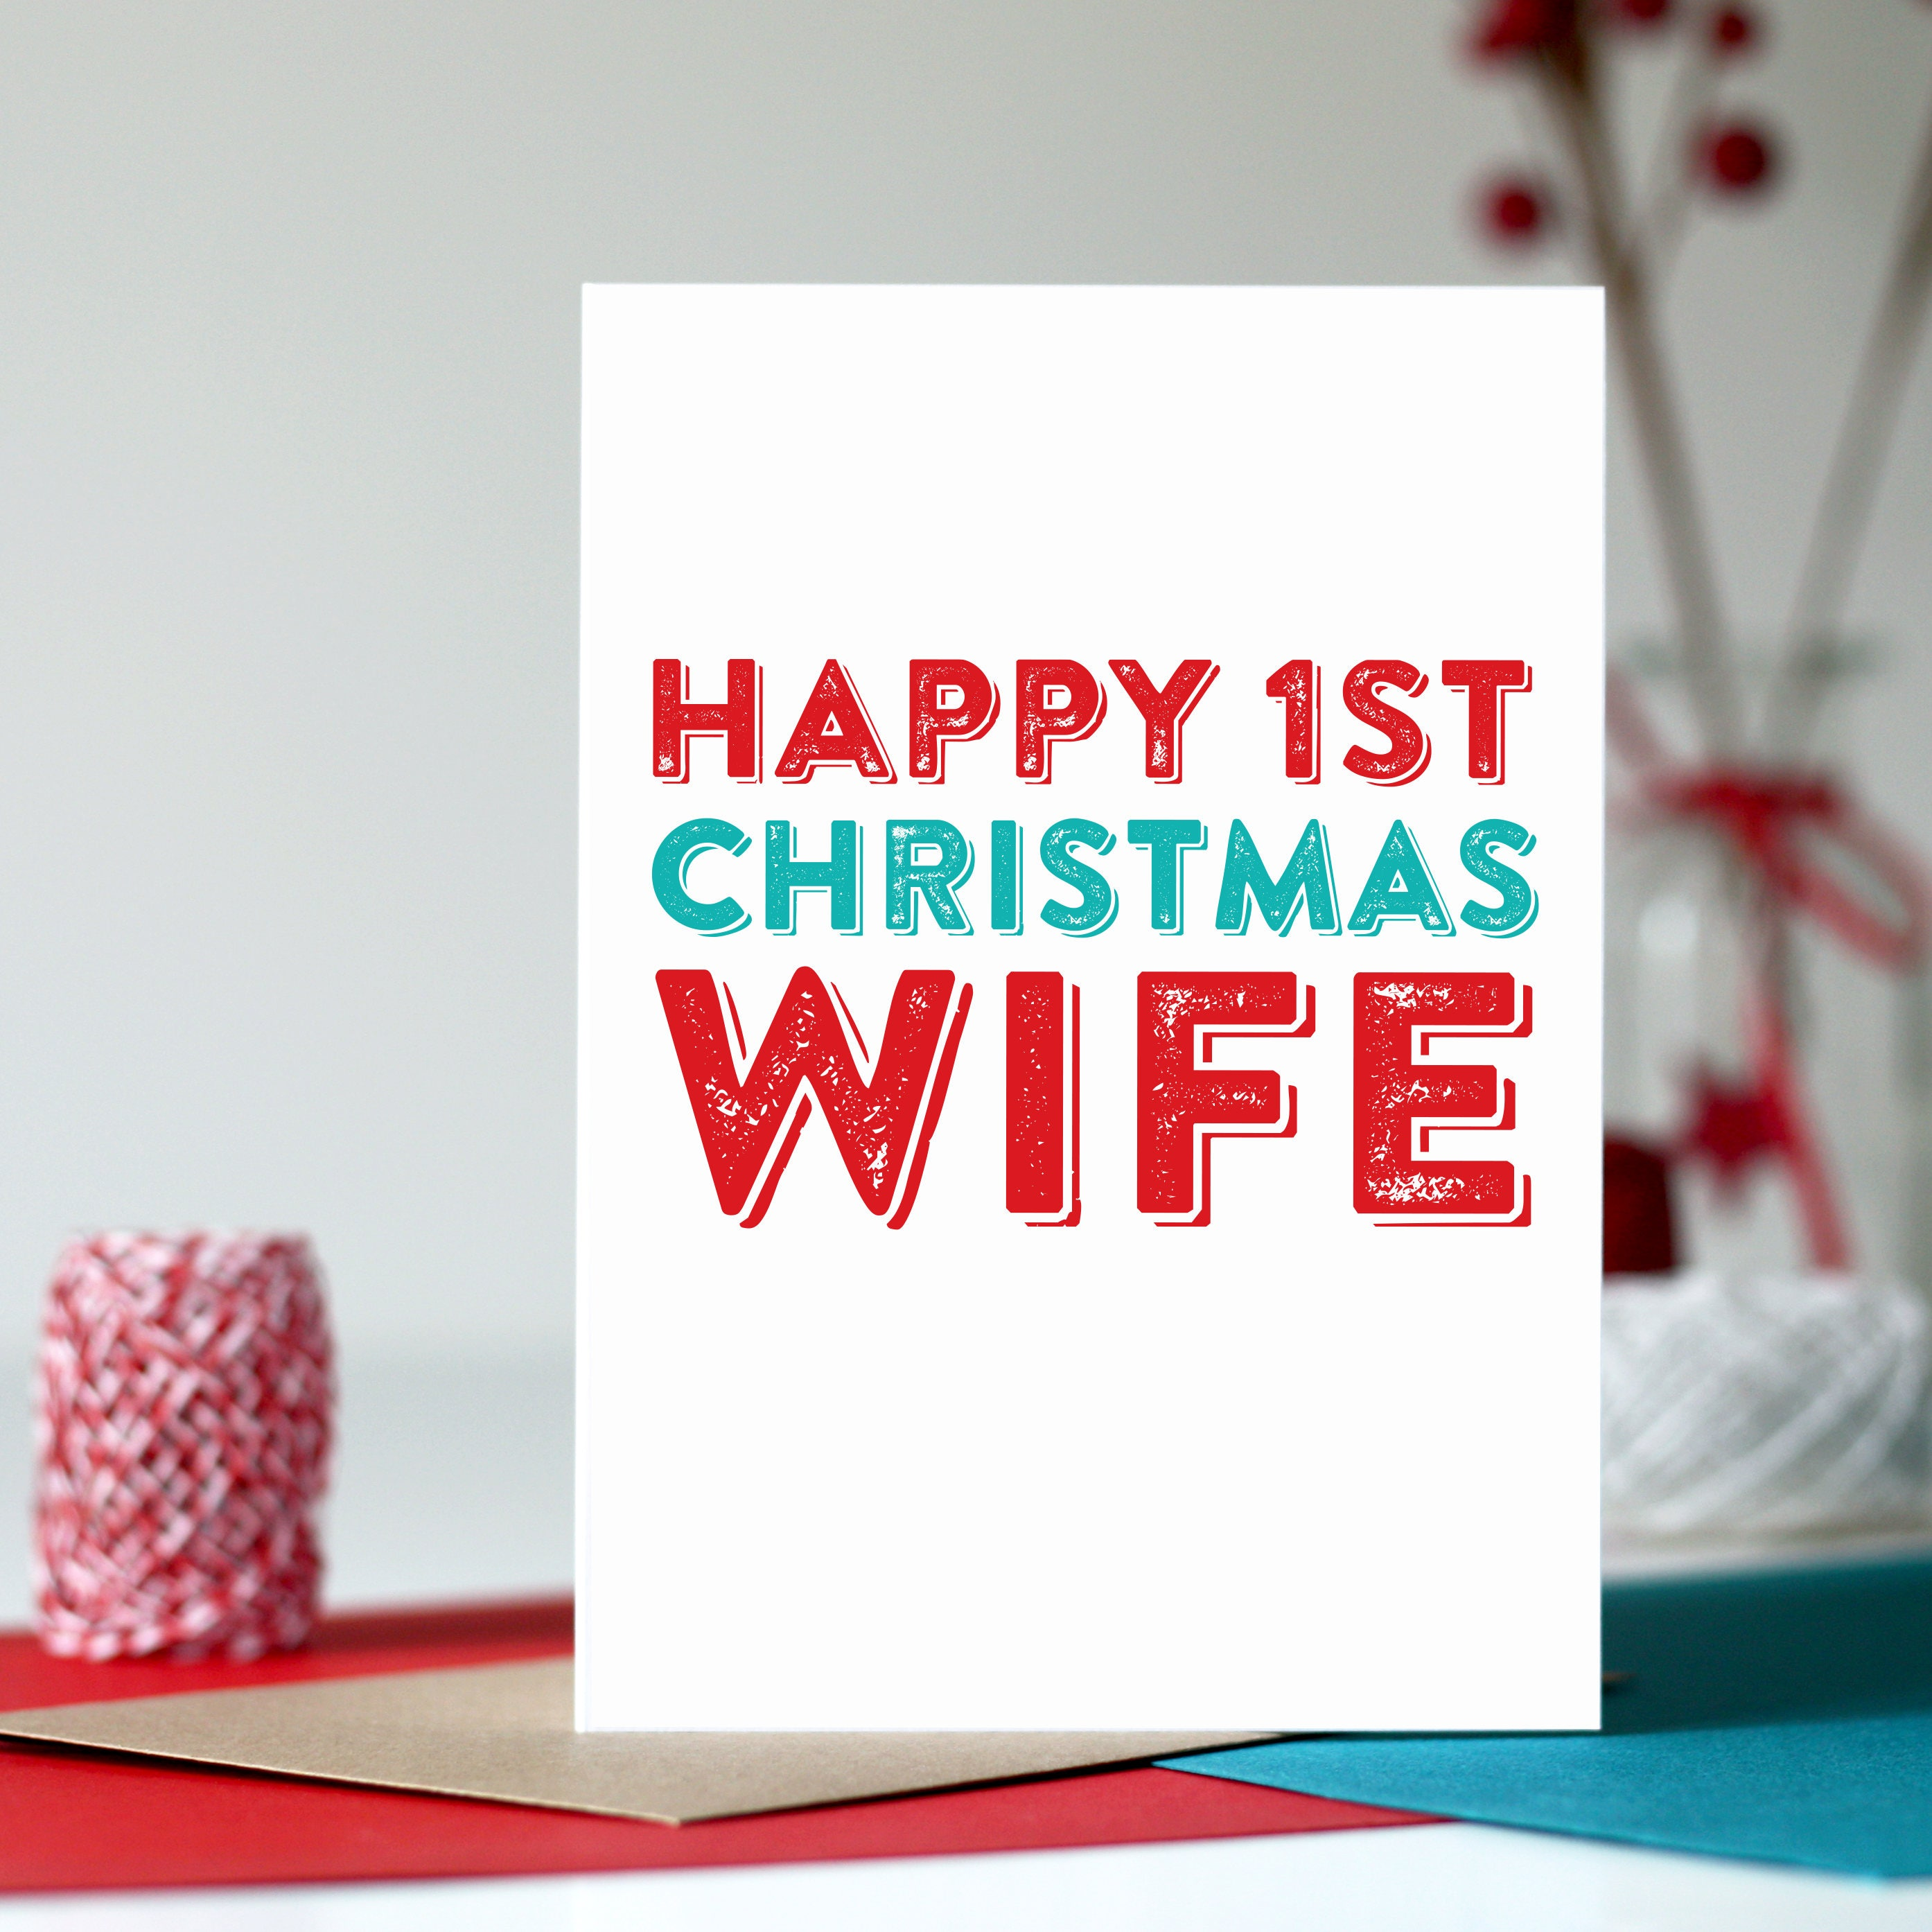 Merry 1st christmas to my wife or husband colourful british merry 1st christmas to my wife or husband colourful british typographic letterpress inspired cheeky fun holidays m4hsunfo